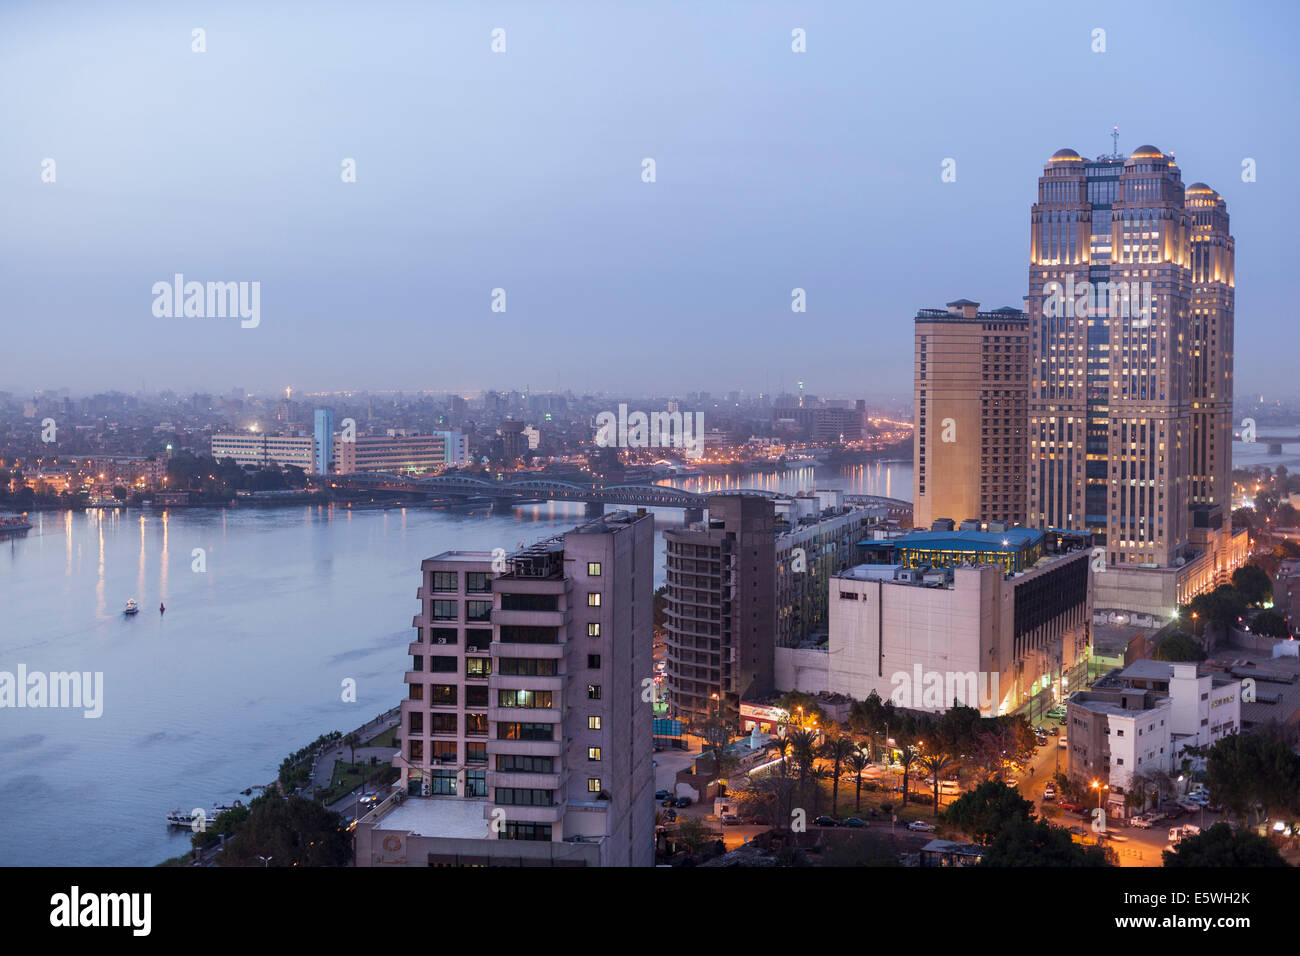 Nile River at dusk in Cairo, Egypt - with the Fairmont Nile City Hotel building on the waterfront - Stock Image